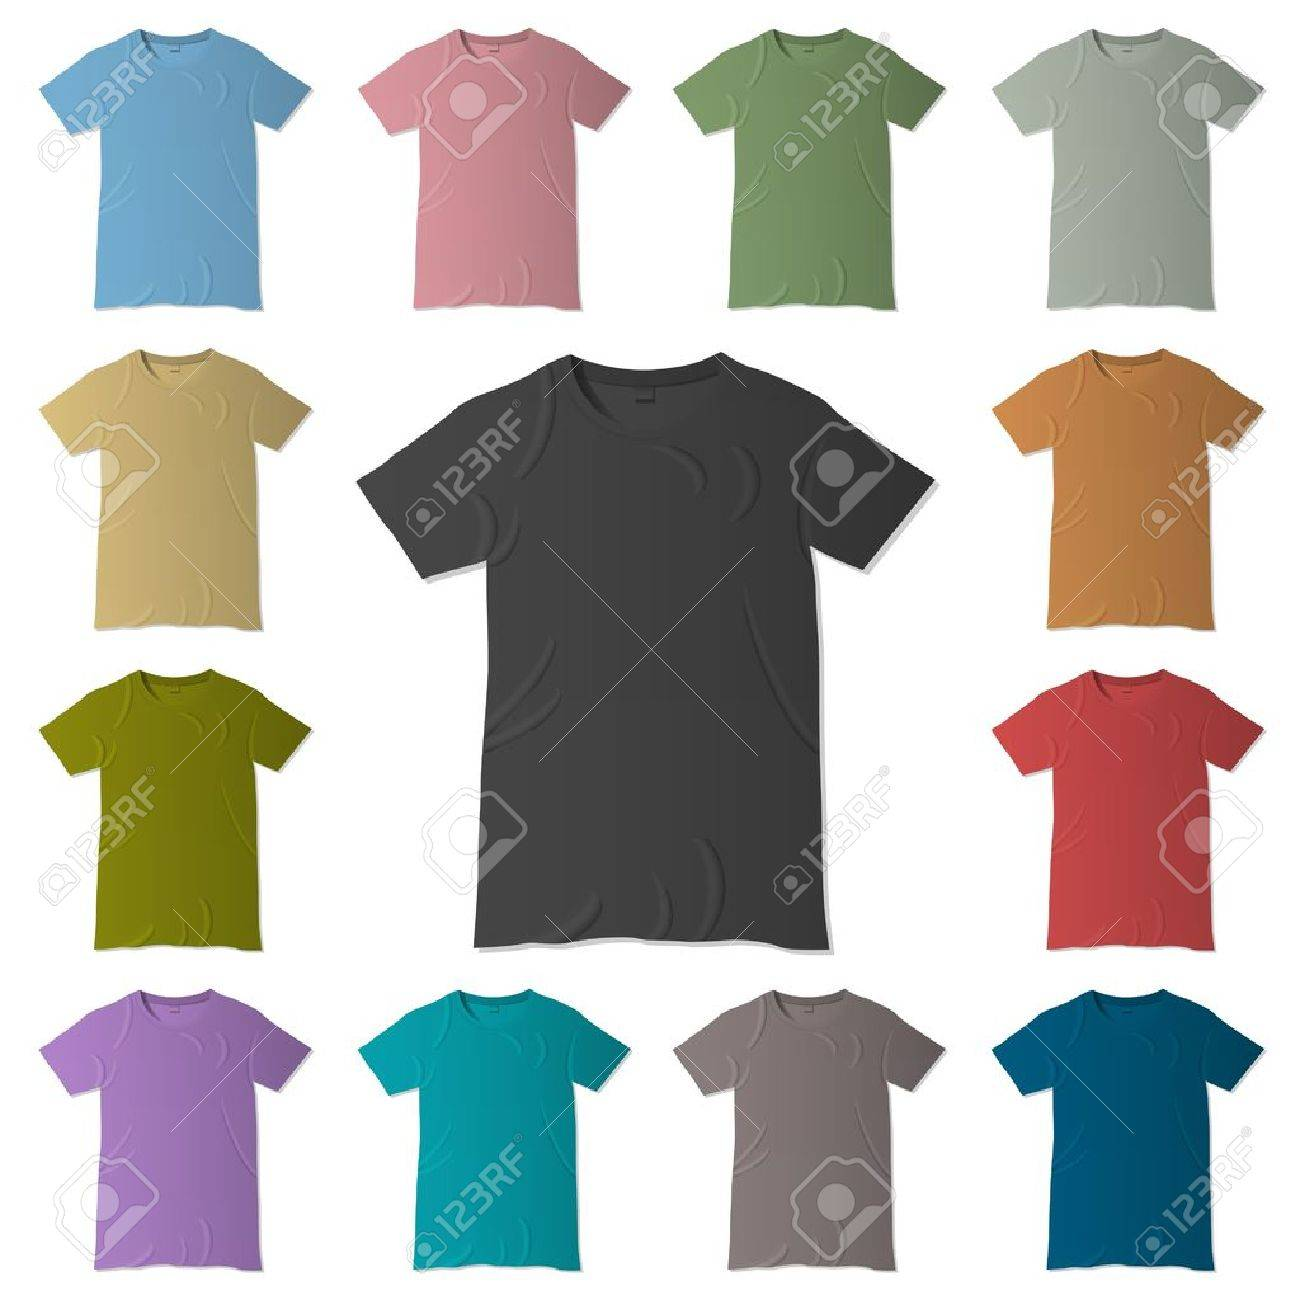 Design t shirt template free - T Shirt Design Templates In Various Colors Royalty Free Cliparts